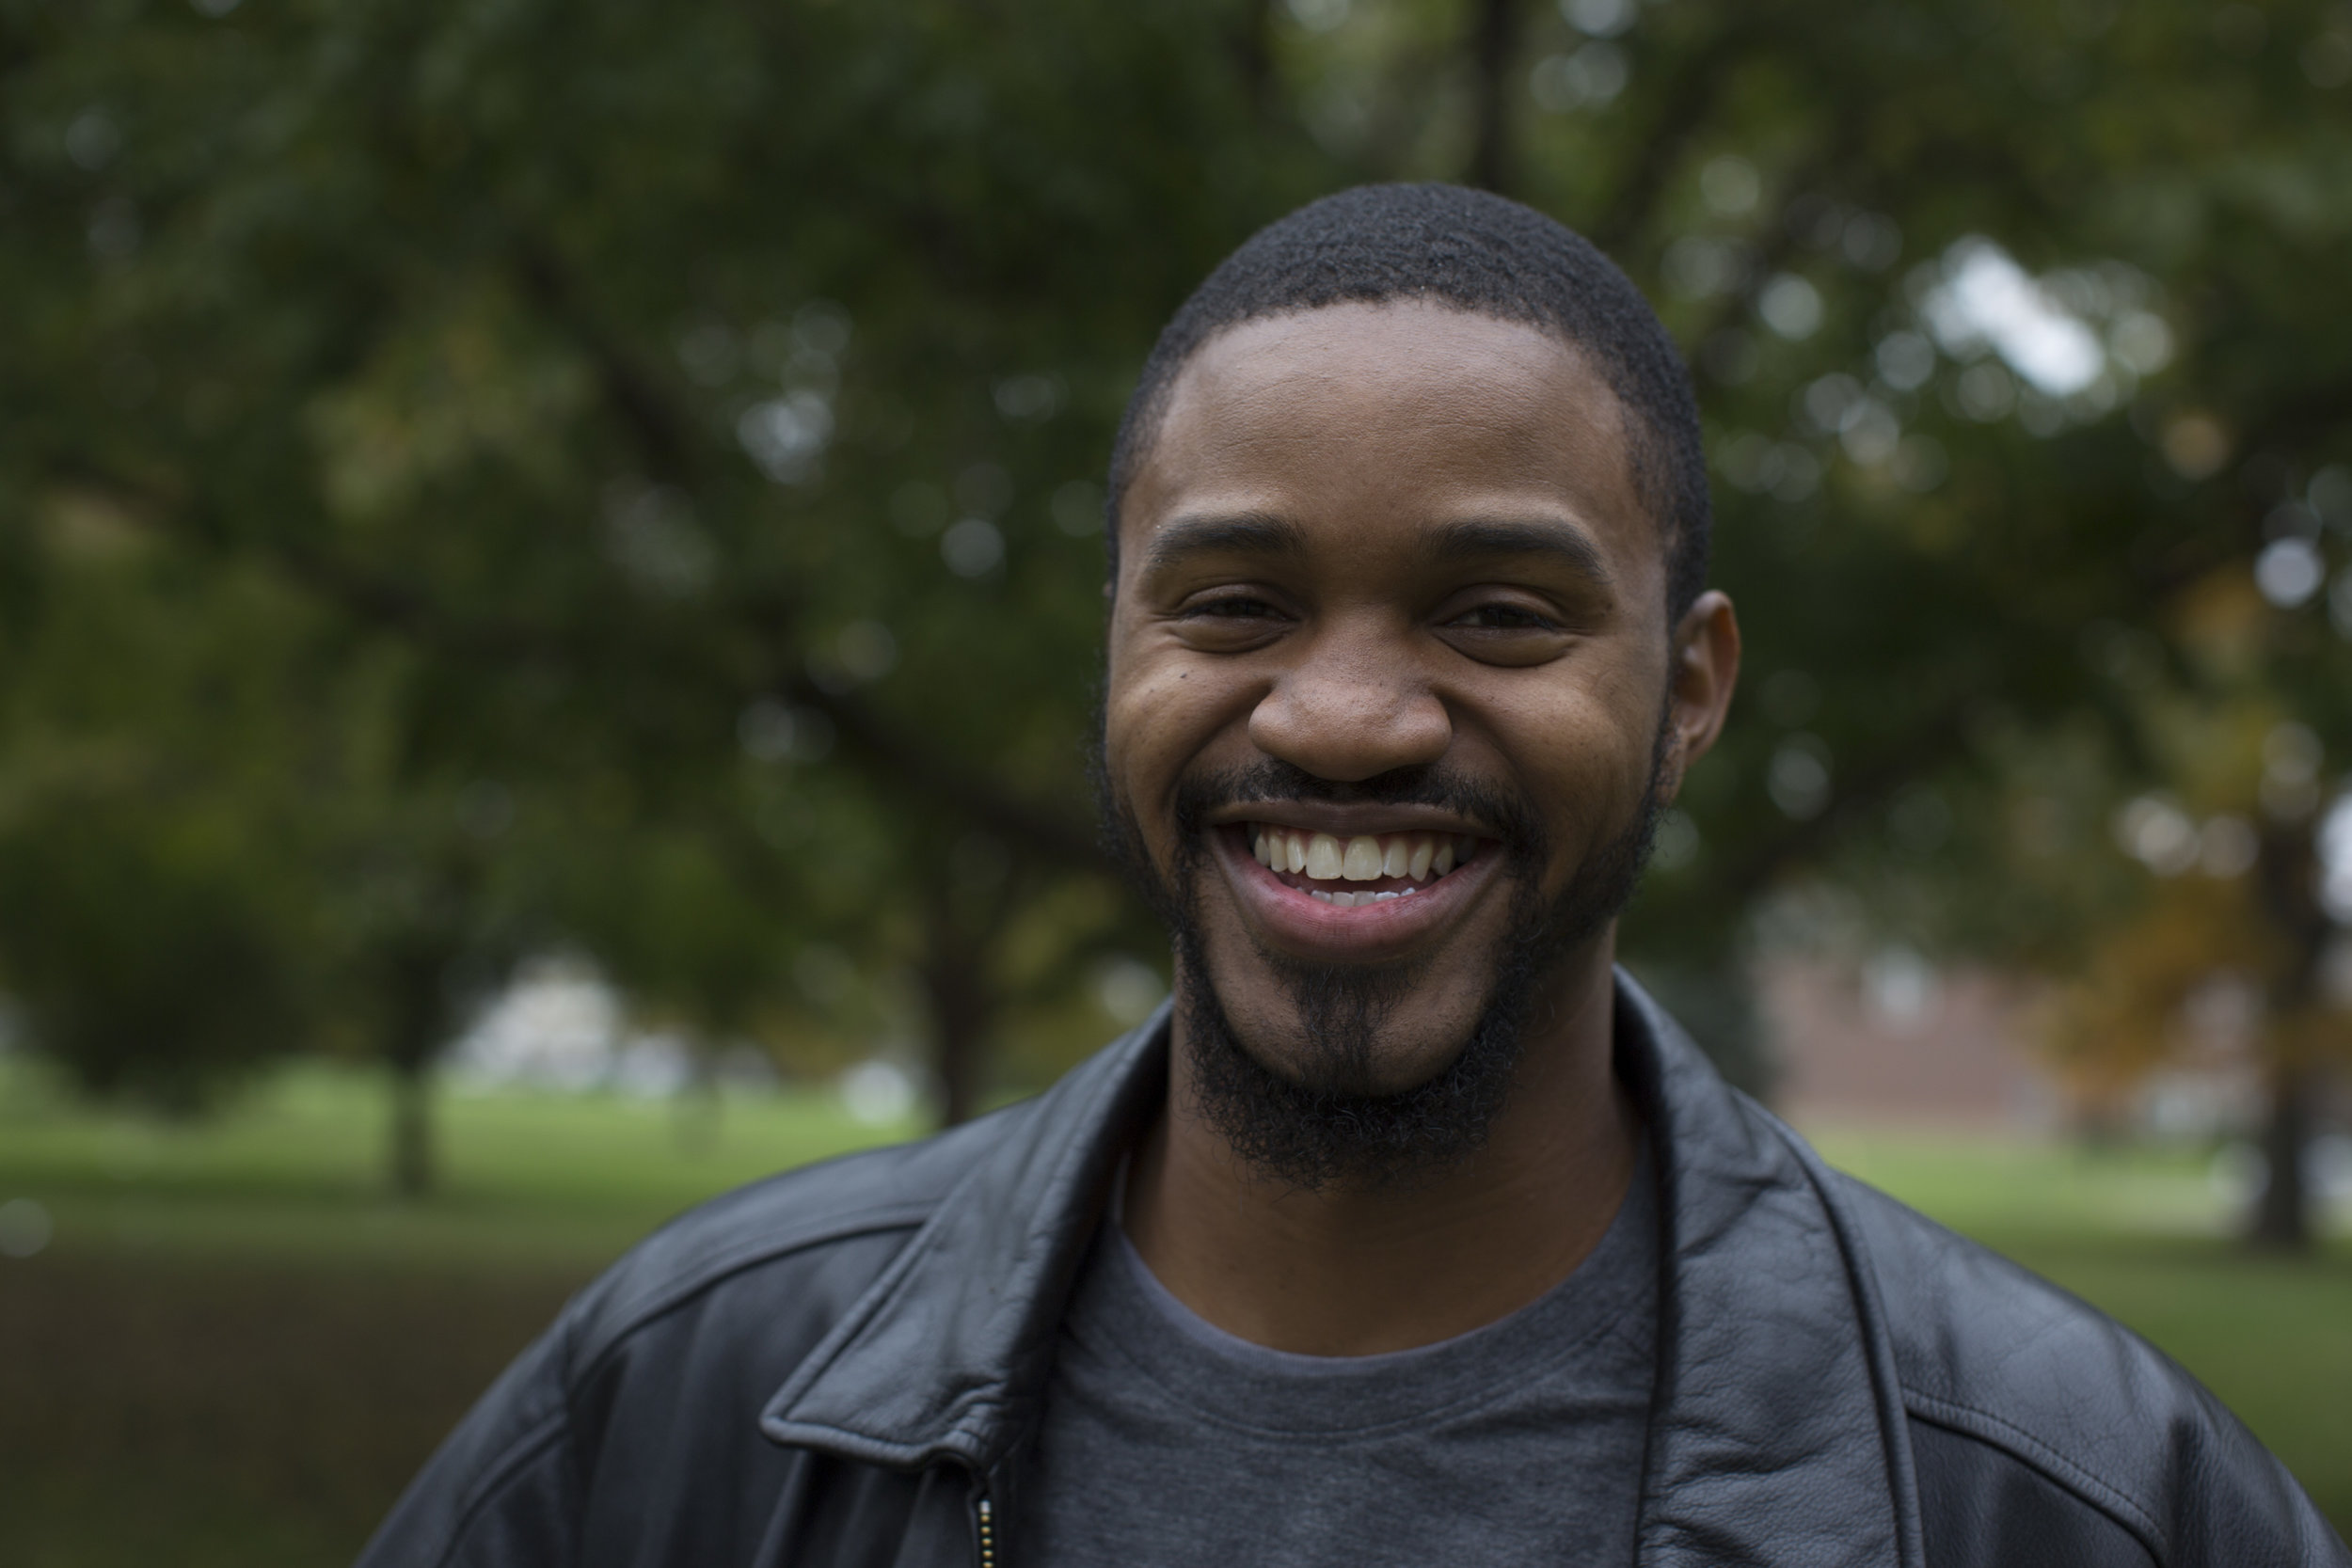 Marq Casey, amazing boxer, Ezzard Charles fan since he started boxing as a kid, West End native and Cincinnati born and raised amazing man, Photo by Kailah Ware